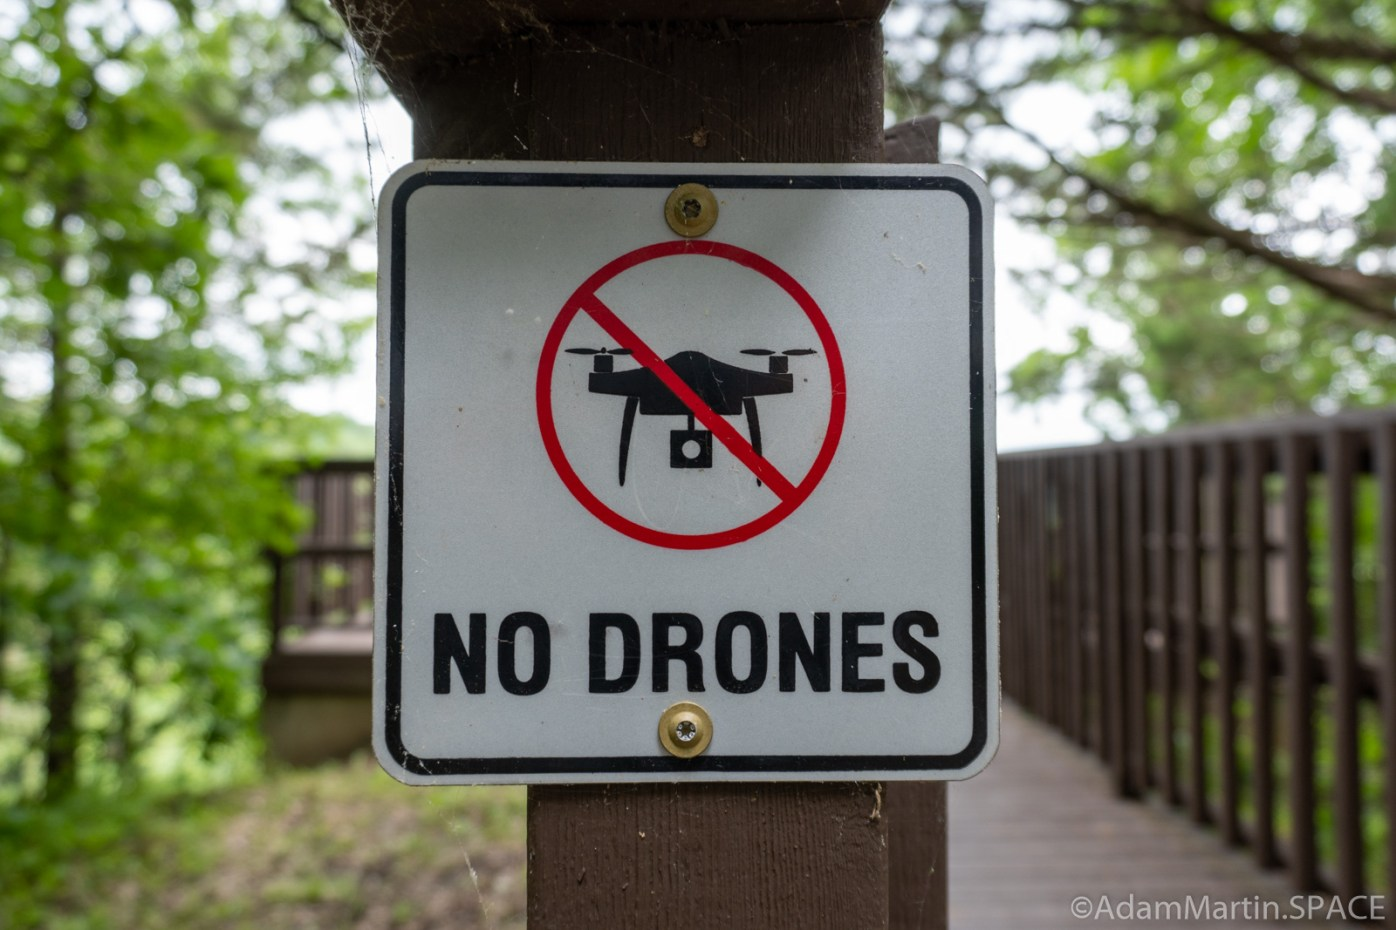 Kinnikinnic State Park - No Drones Warning Sign